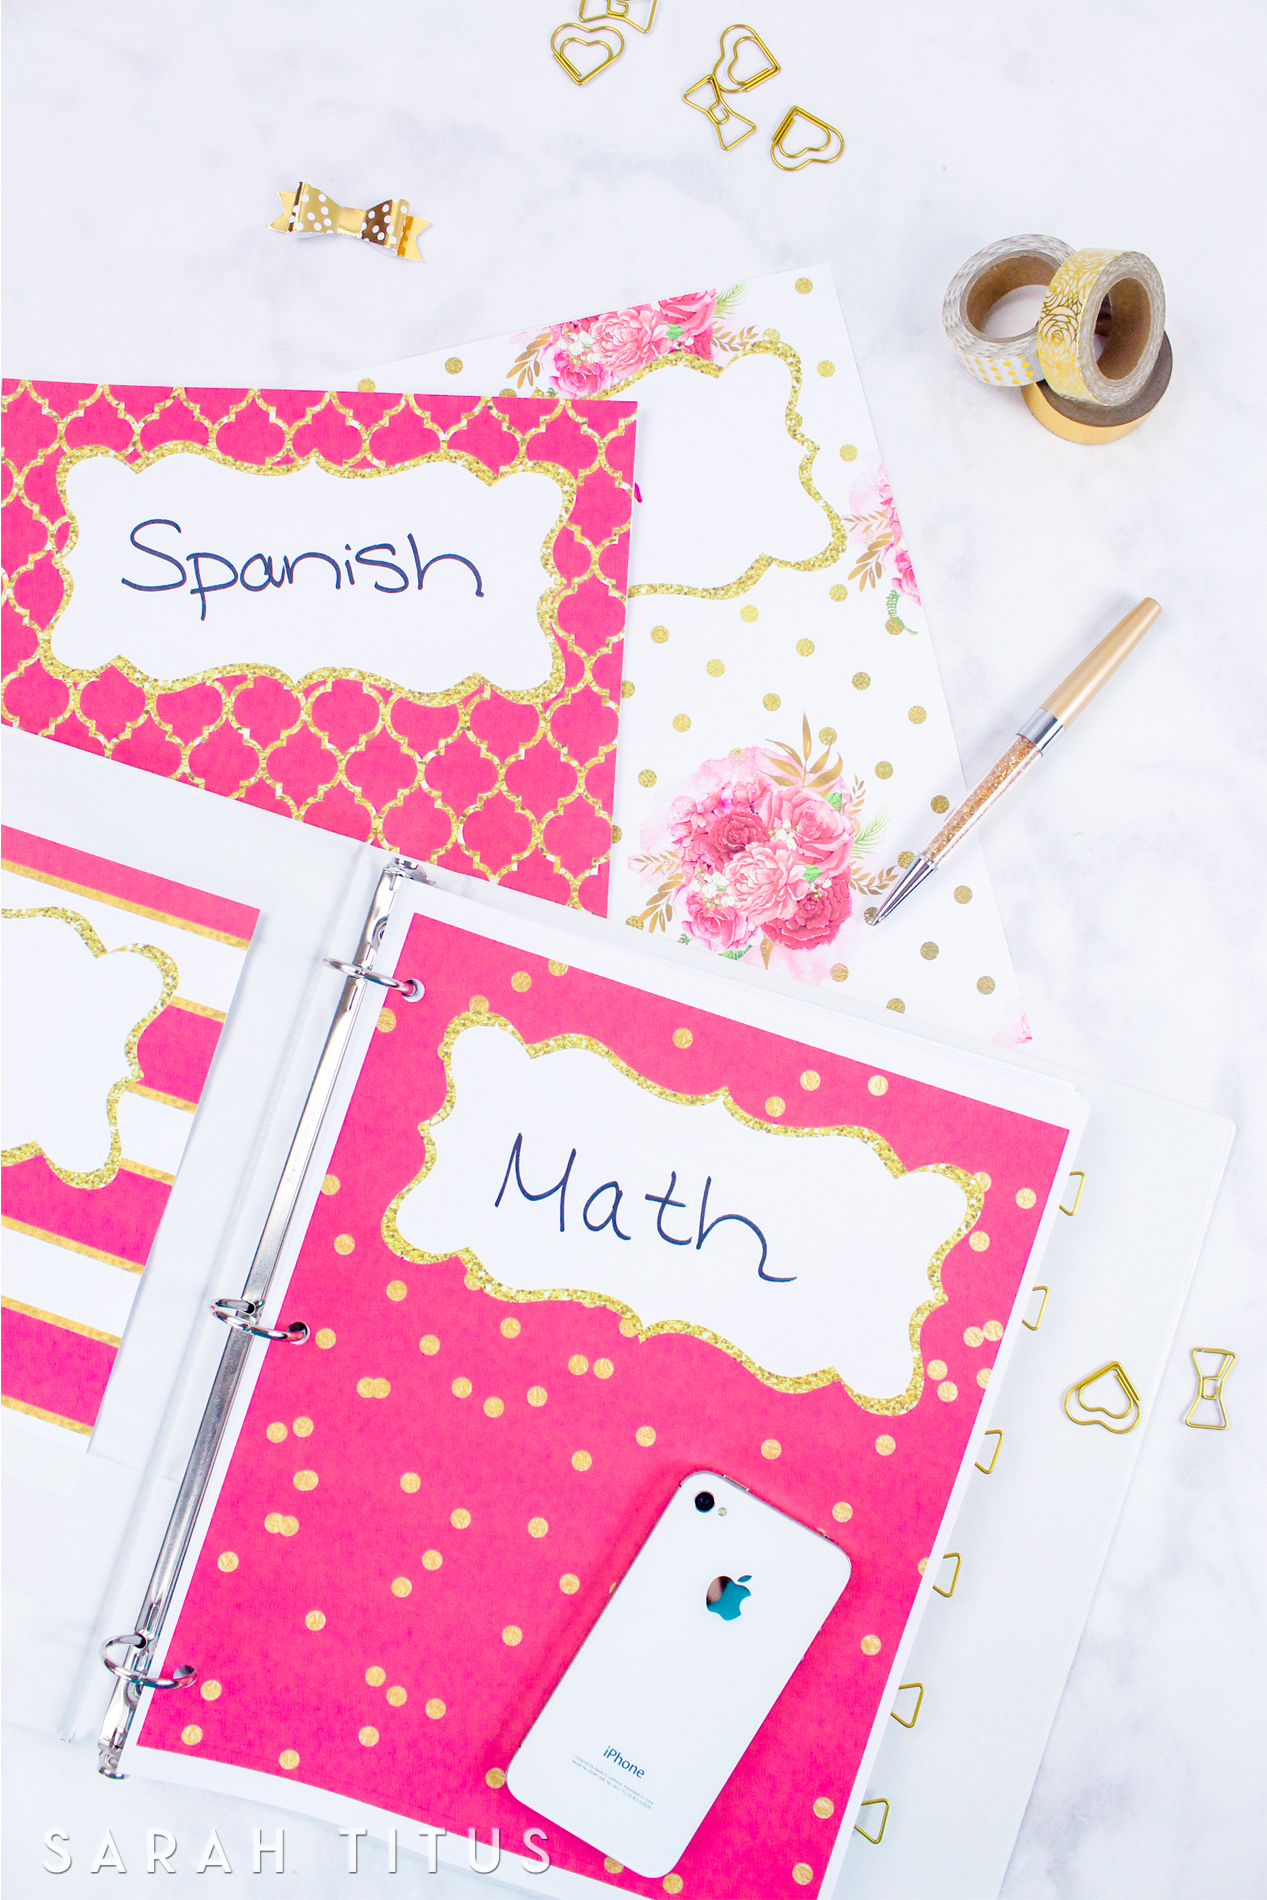 Use these binder covers / dividers free printables either as binder covers or as dividers for anything you want to organize, whether it be school, your notebooks, or home binders.